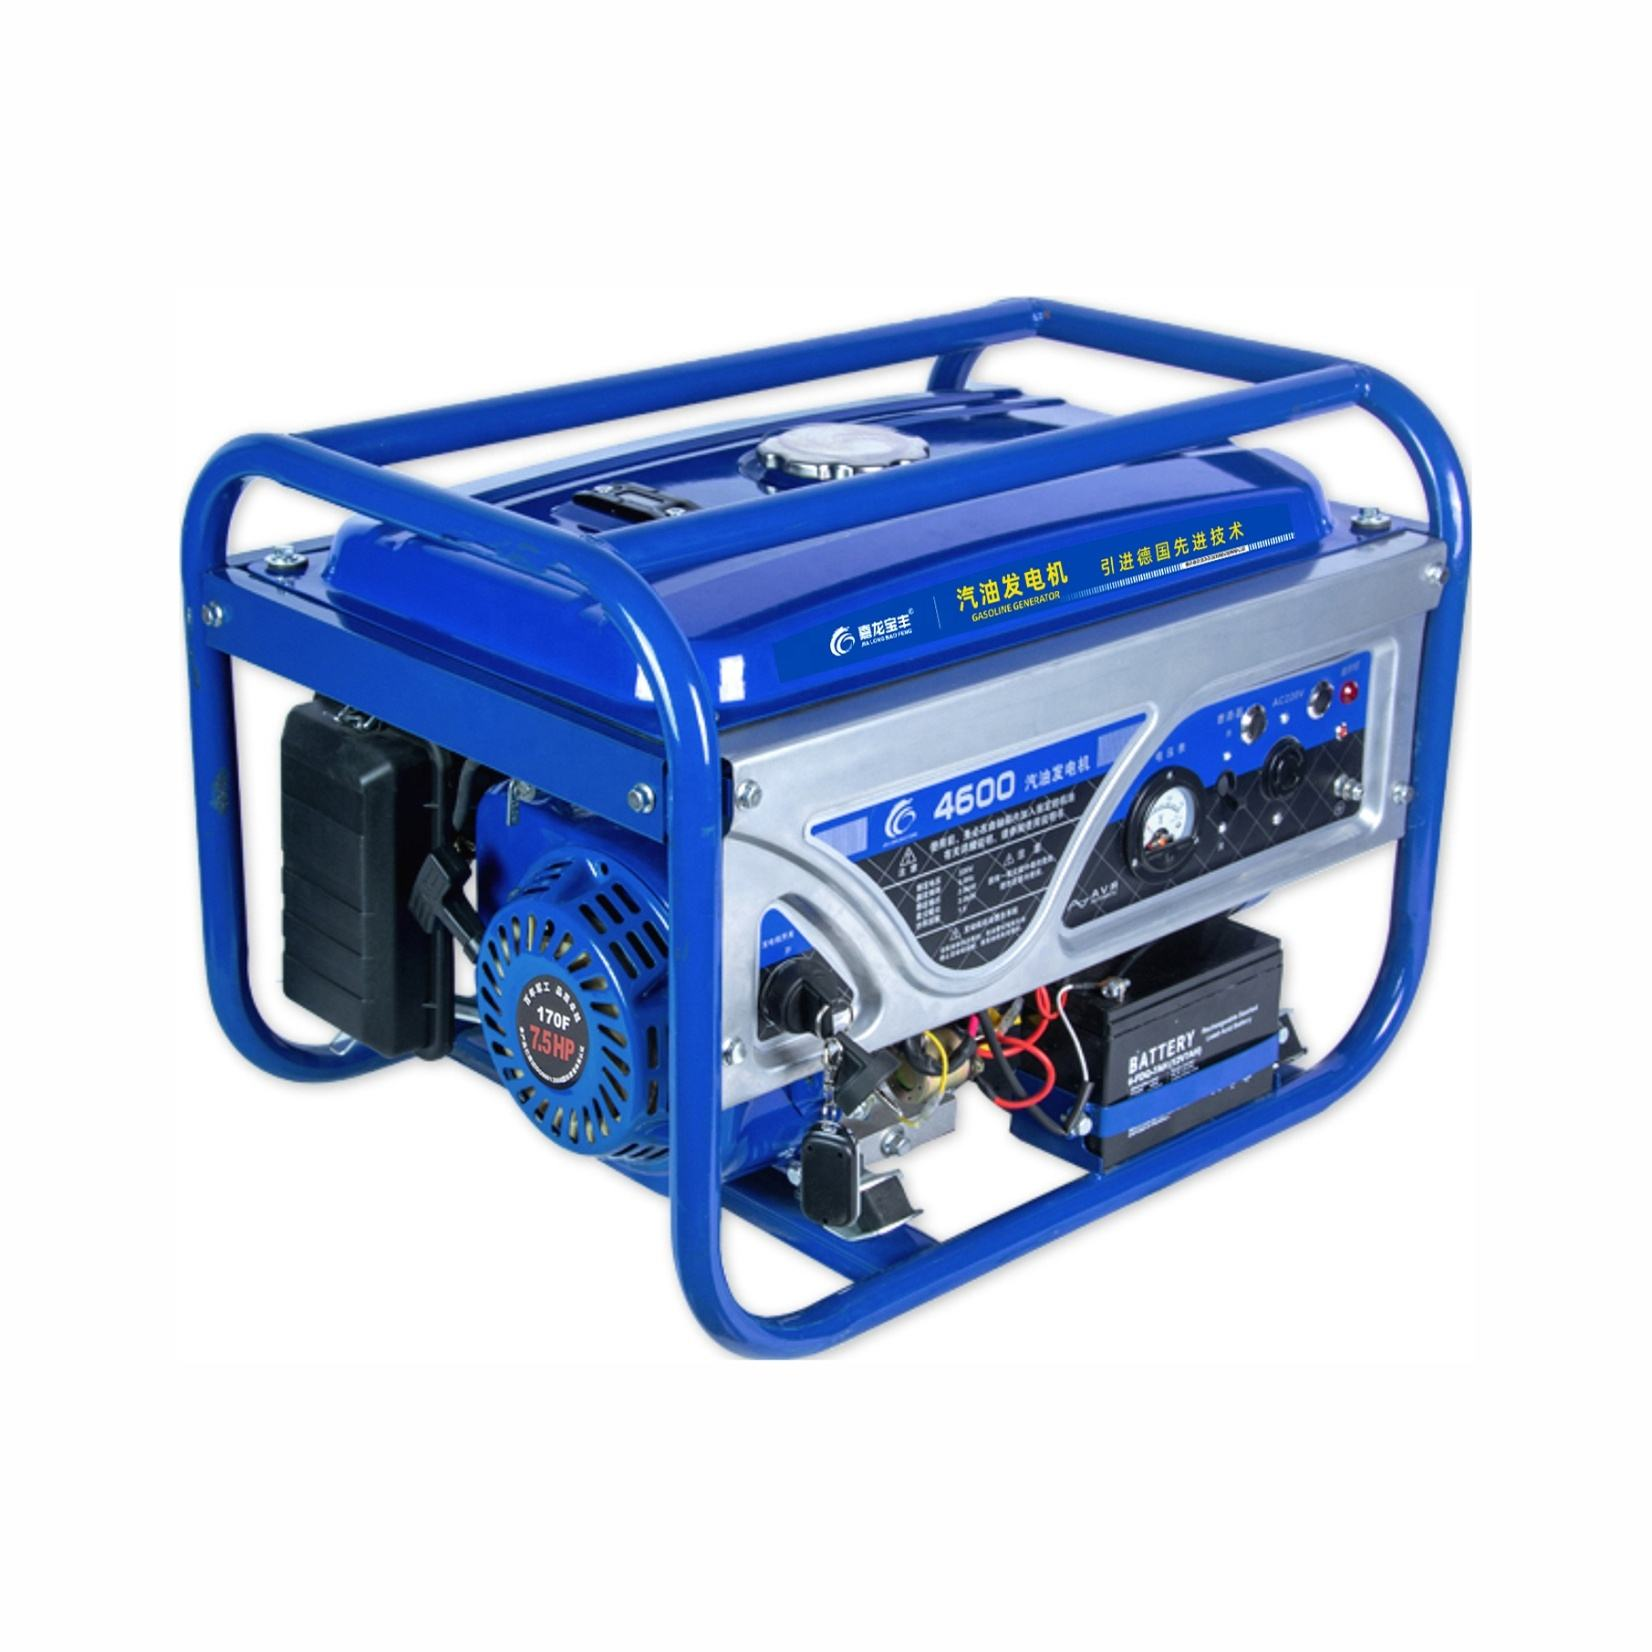 7.5hp OHV Electric Start Gasoline Engine Generator 2kw 3kw Price